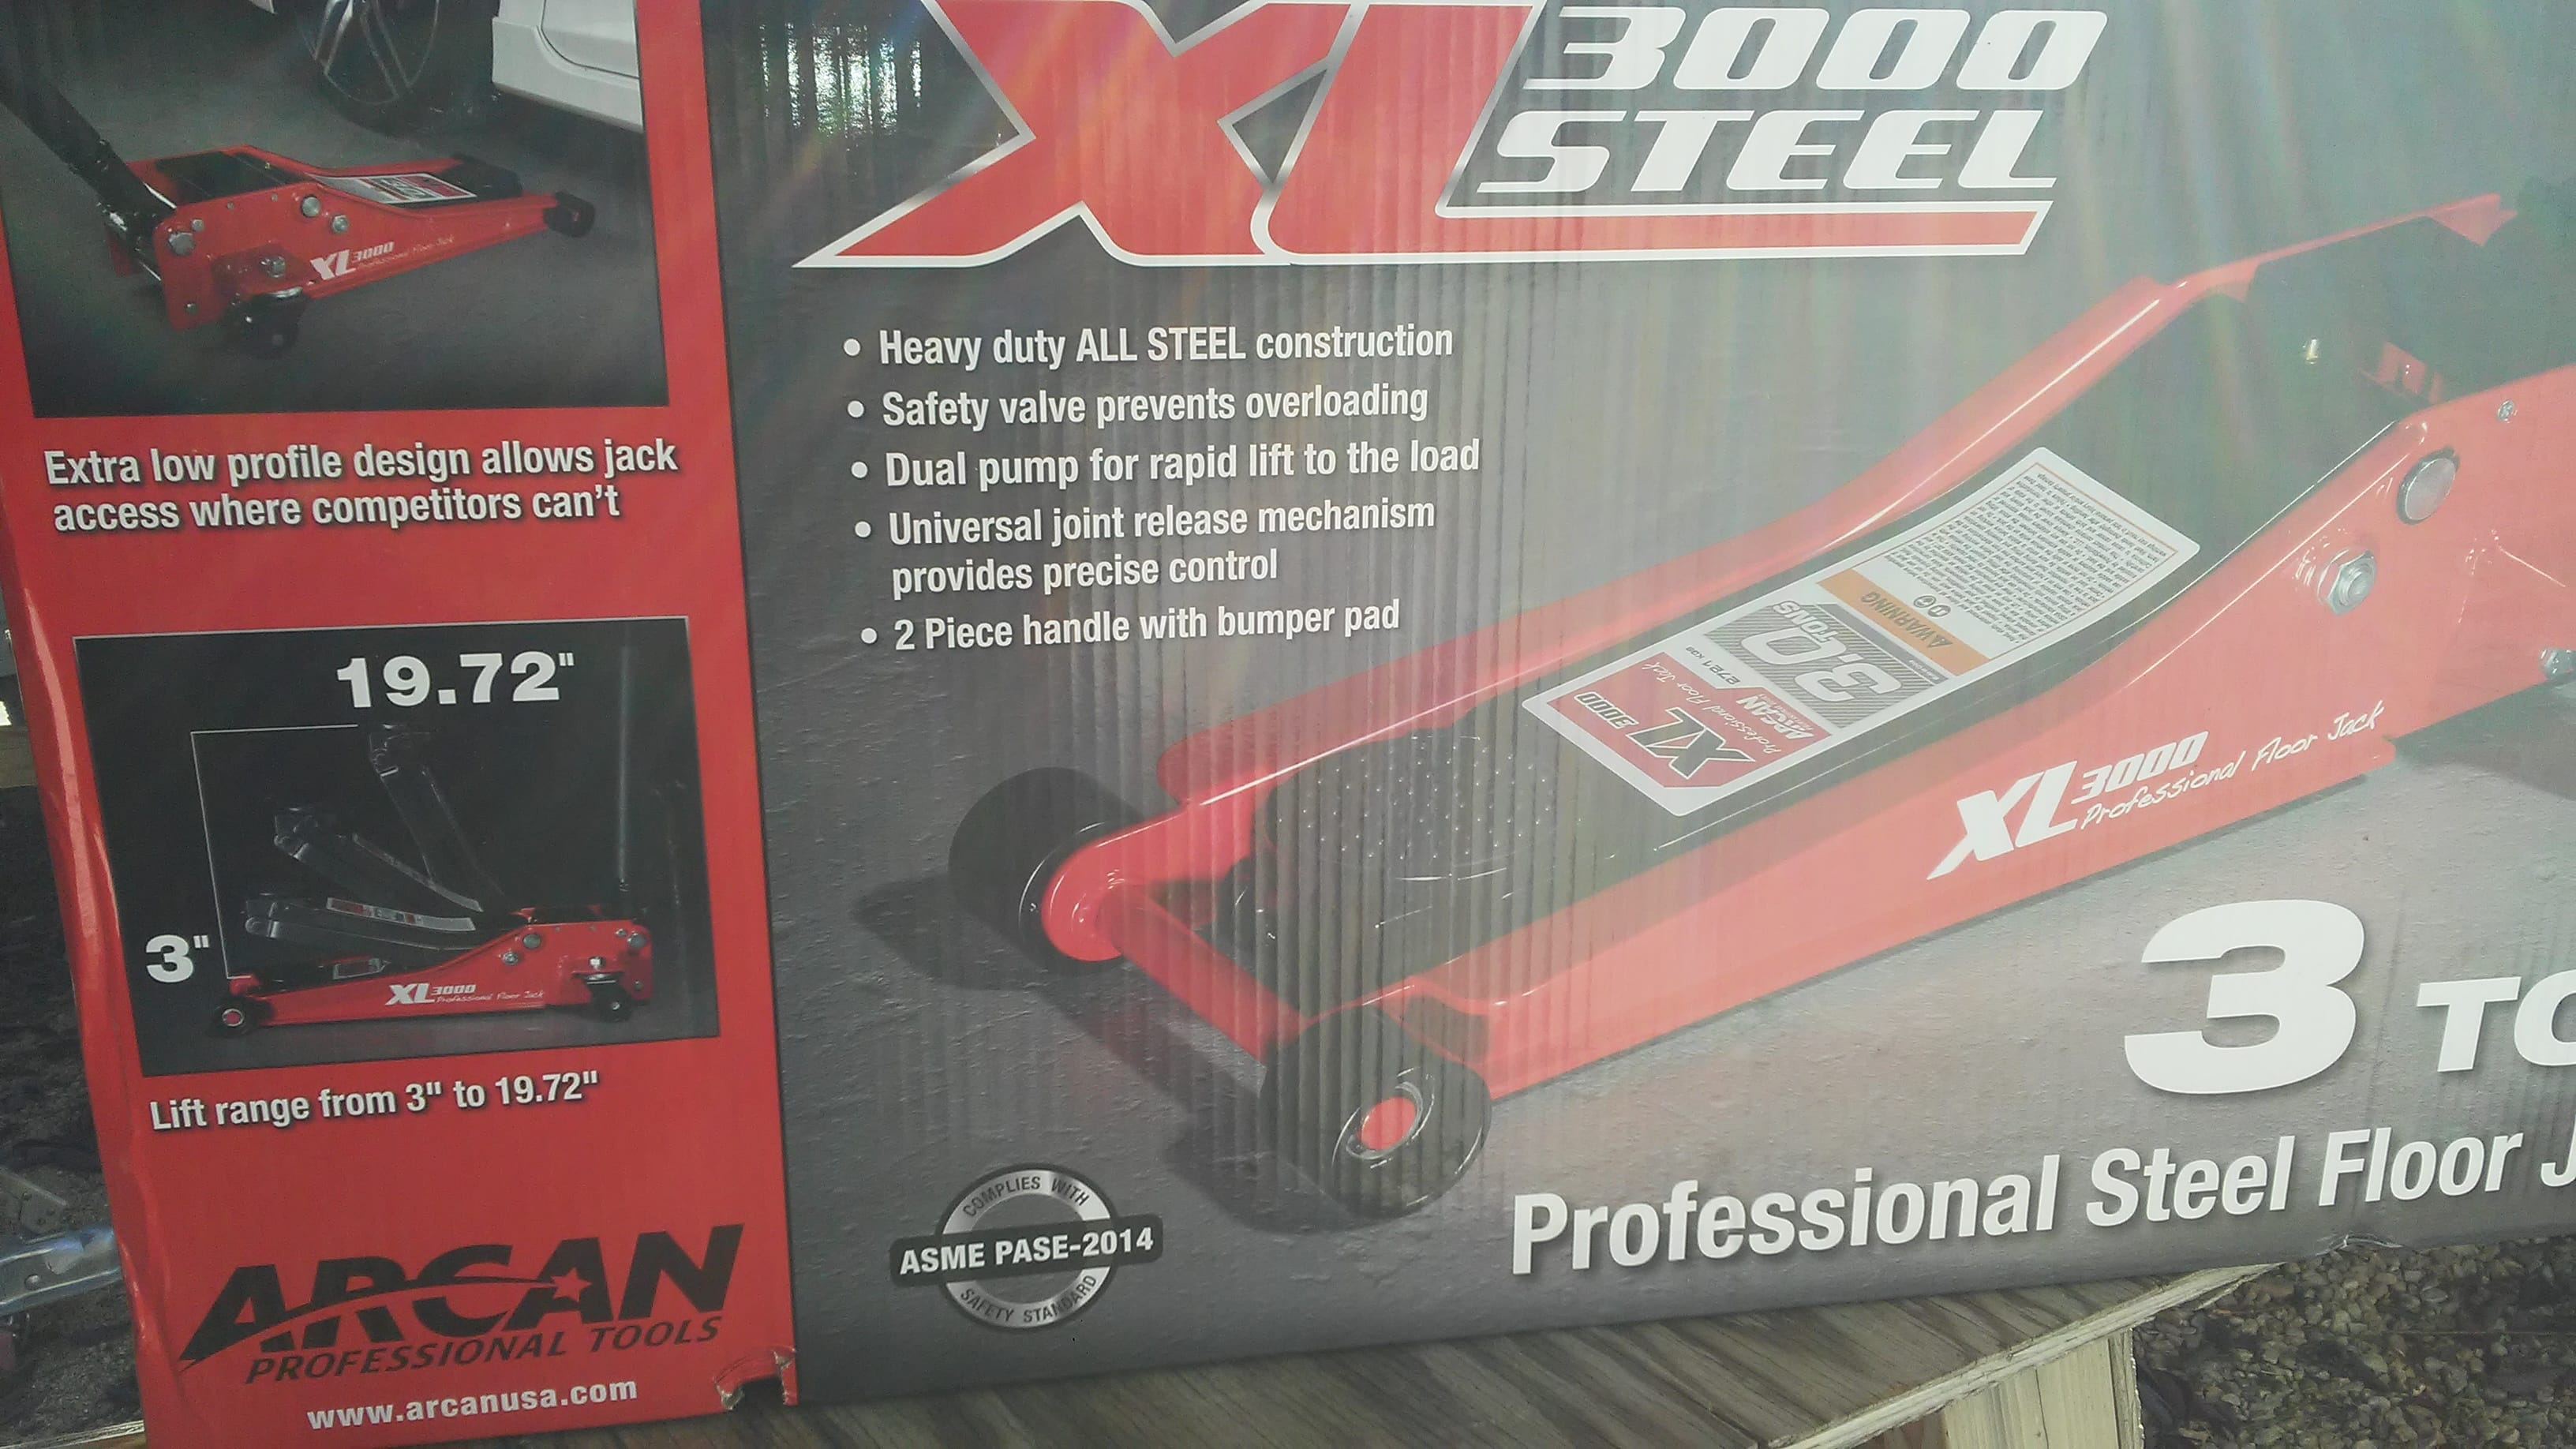 Costco in-store Arcan XL3000 Low Profile 3 Ton All Steel Jack $94.99